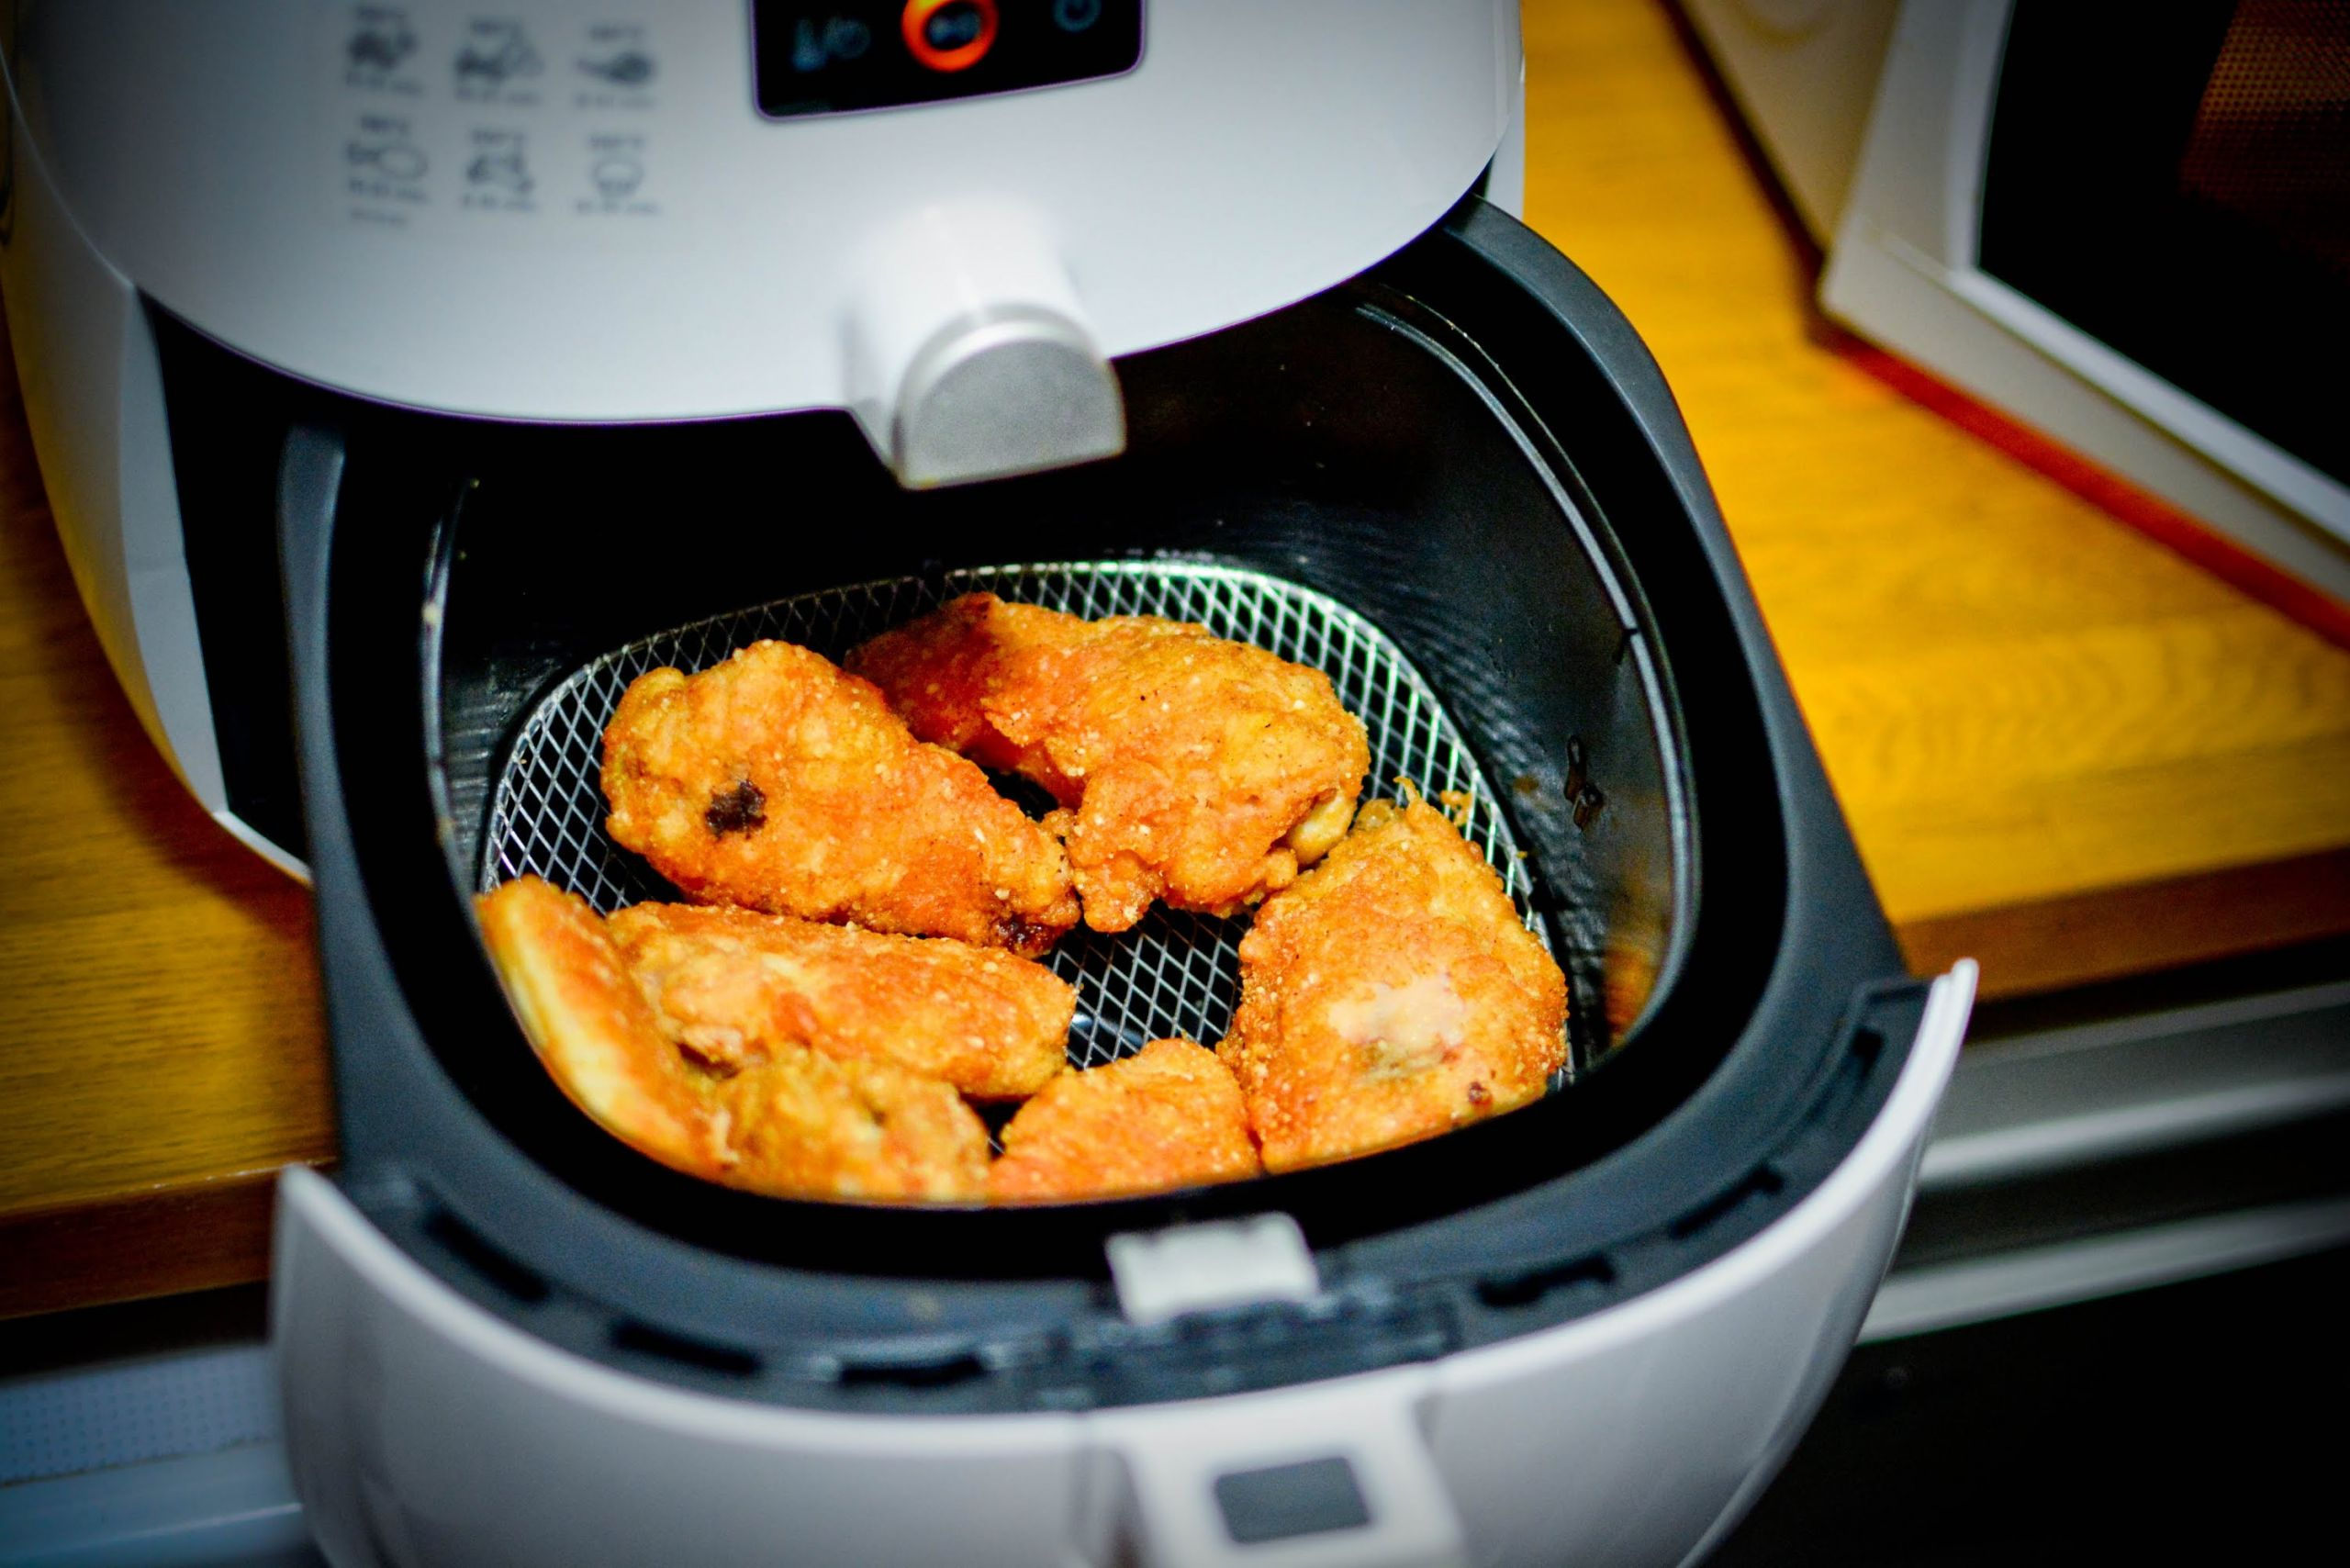 Frozen Chicken Wings In Airfryer  How To Cook Frozen Chicken Wings In Airfryer Air Fryer